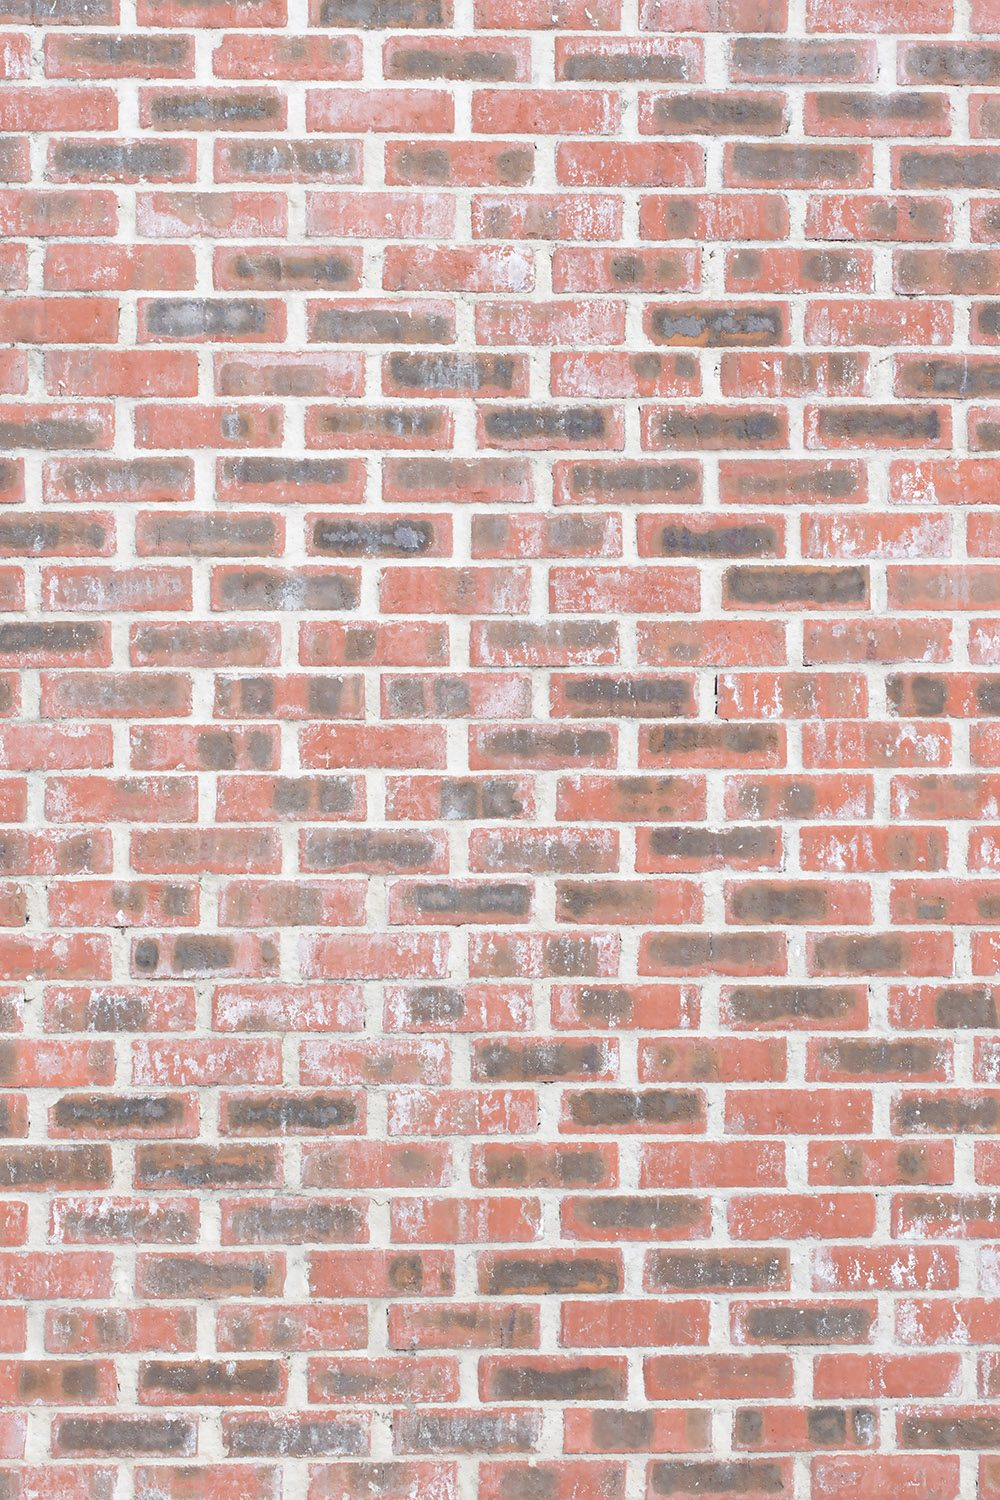 Red Brick Wall Printed Vinyl Backdrop